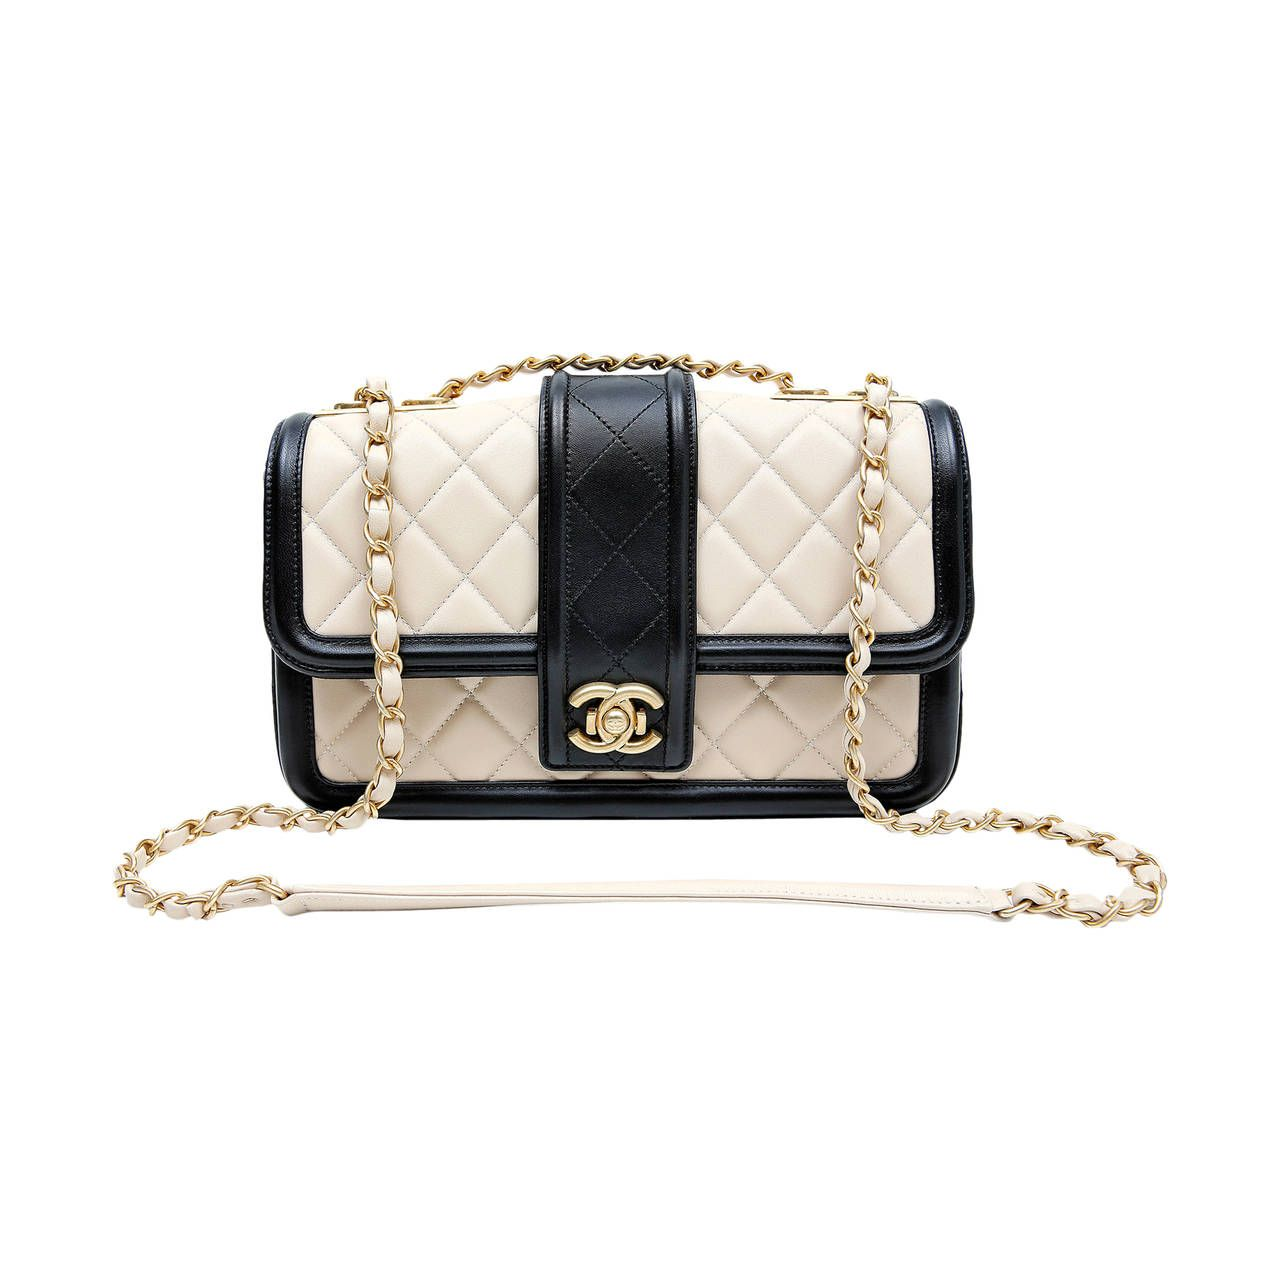 9041dc3db9a2 Chanel Beige Leather Black Trim Flap Bag | From a collection of rare  vintage shoulder bags